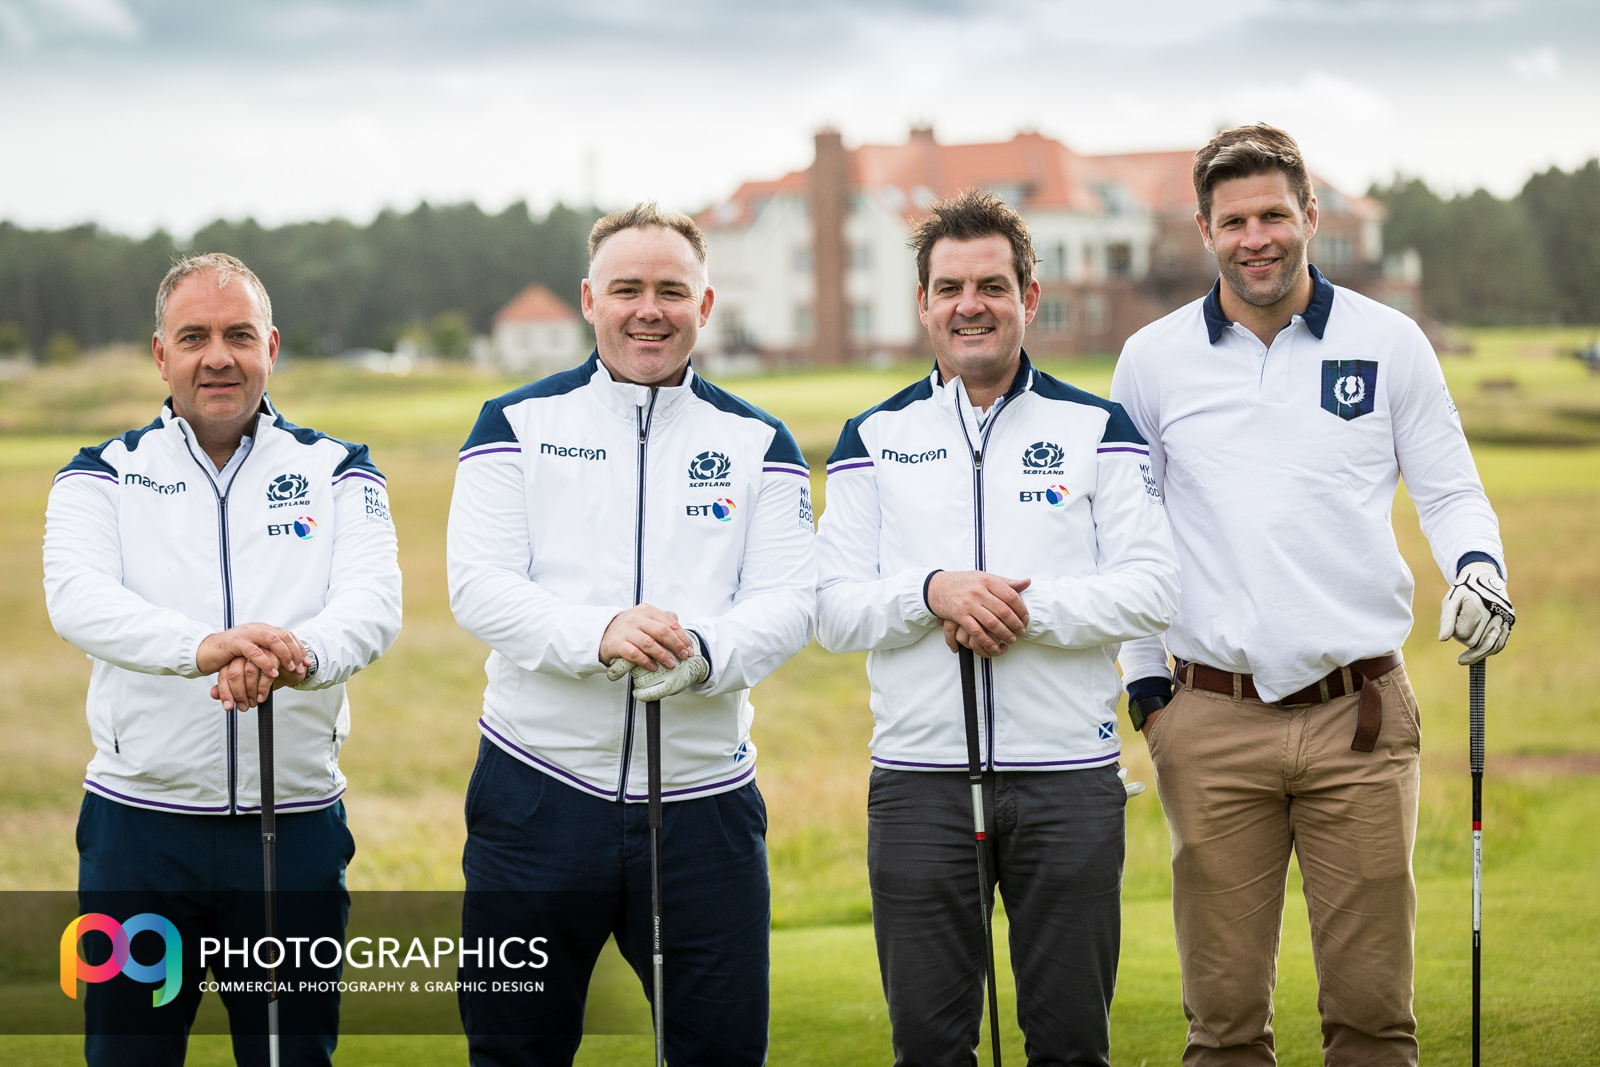 charity-golf-pr-event-photography-glasgow-edinburgh-scotland-25.jpg